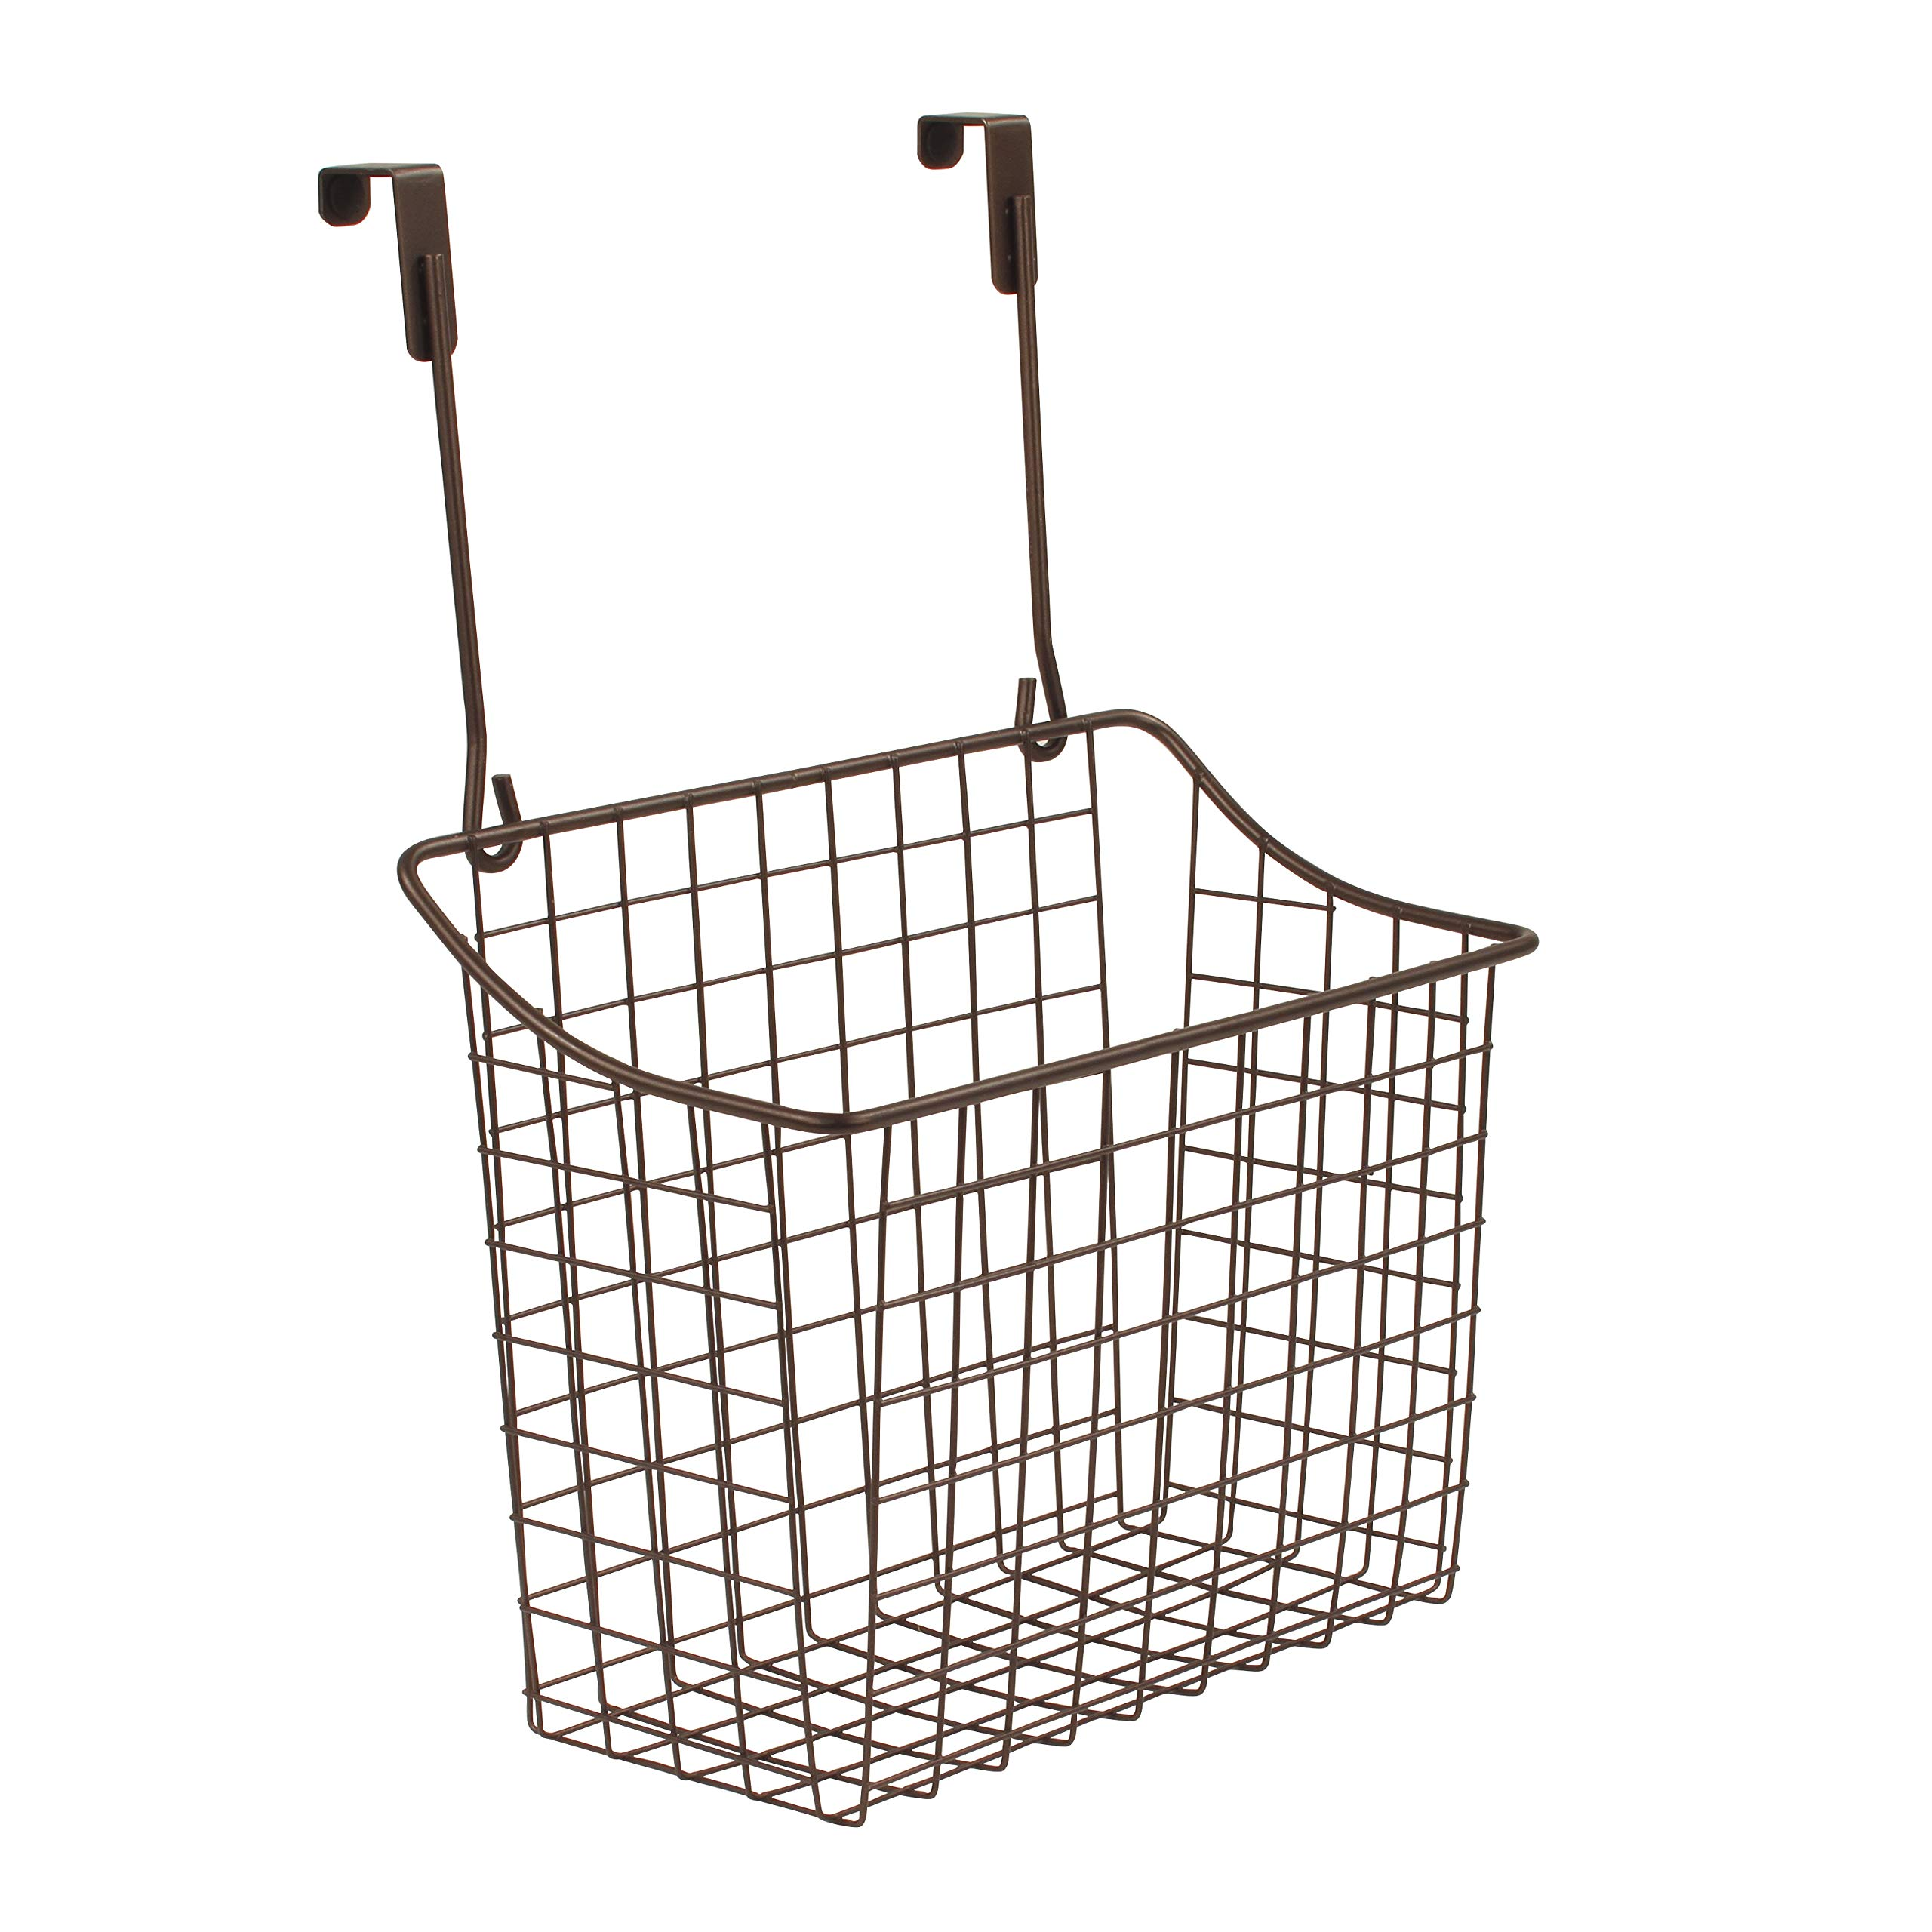 Spectrum Diversified Over The Cabinet Grid Storage Basket, Large, Bronze by Spectrum Diversified